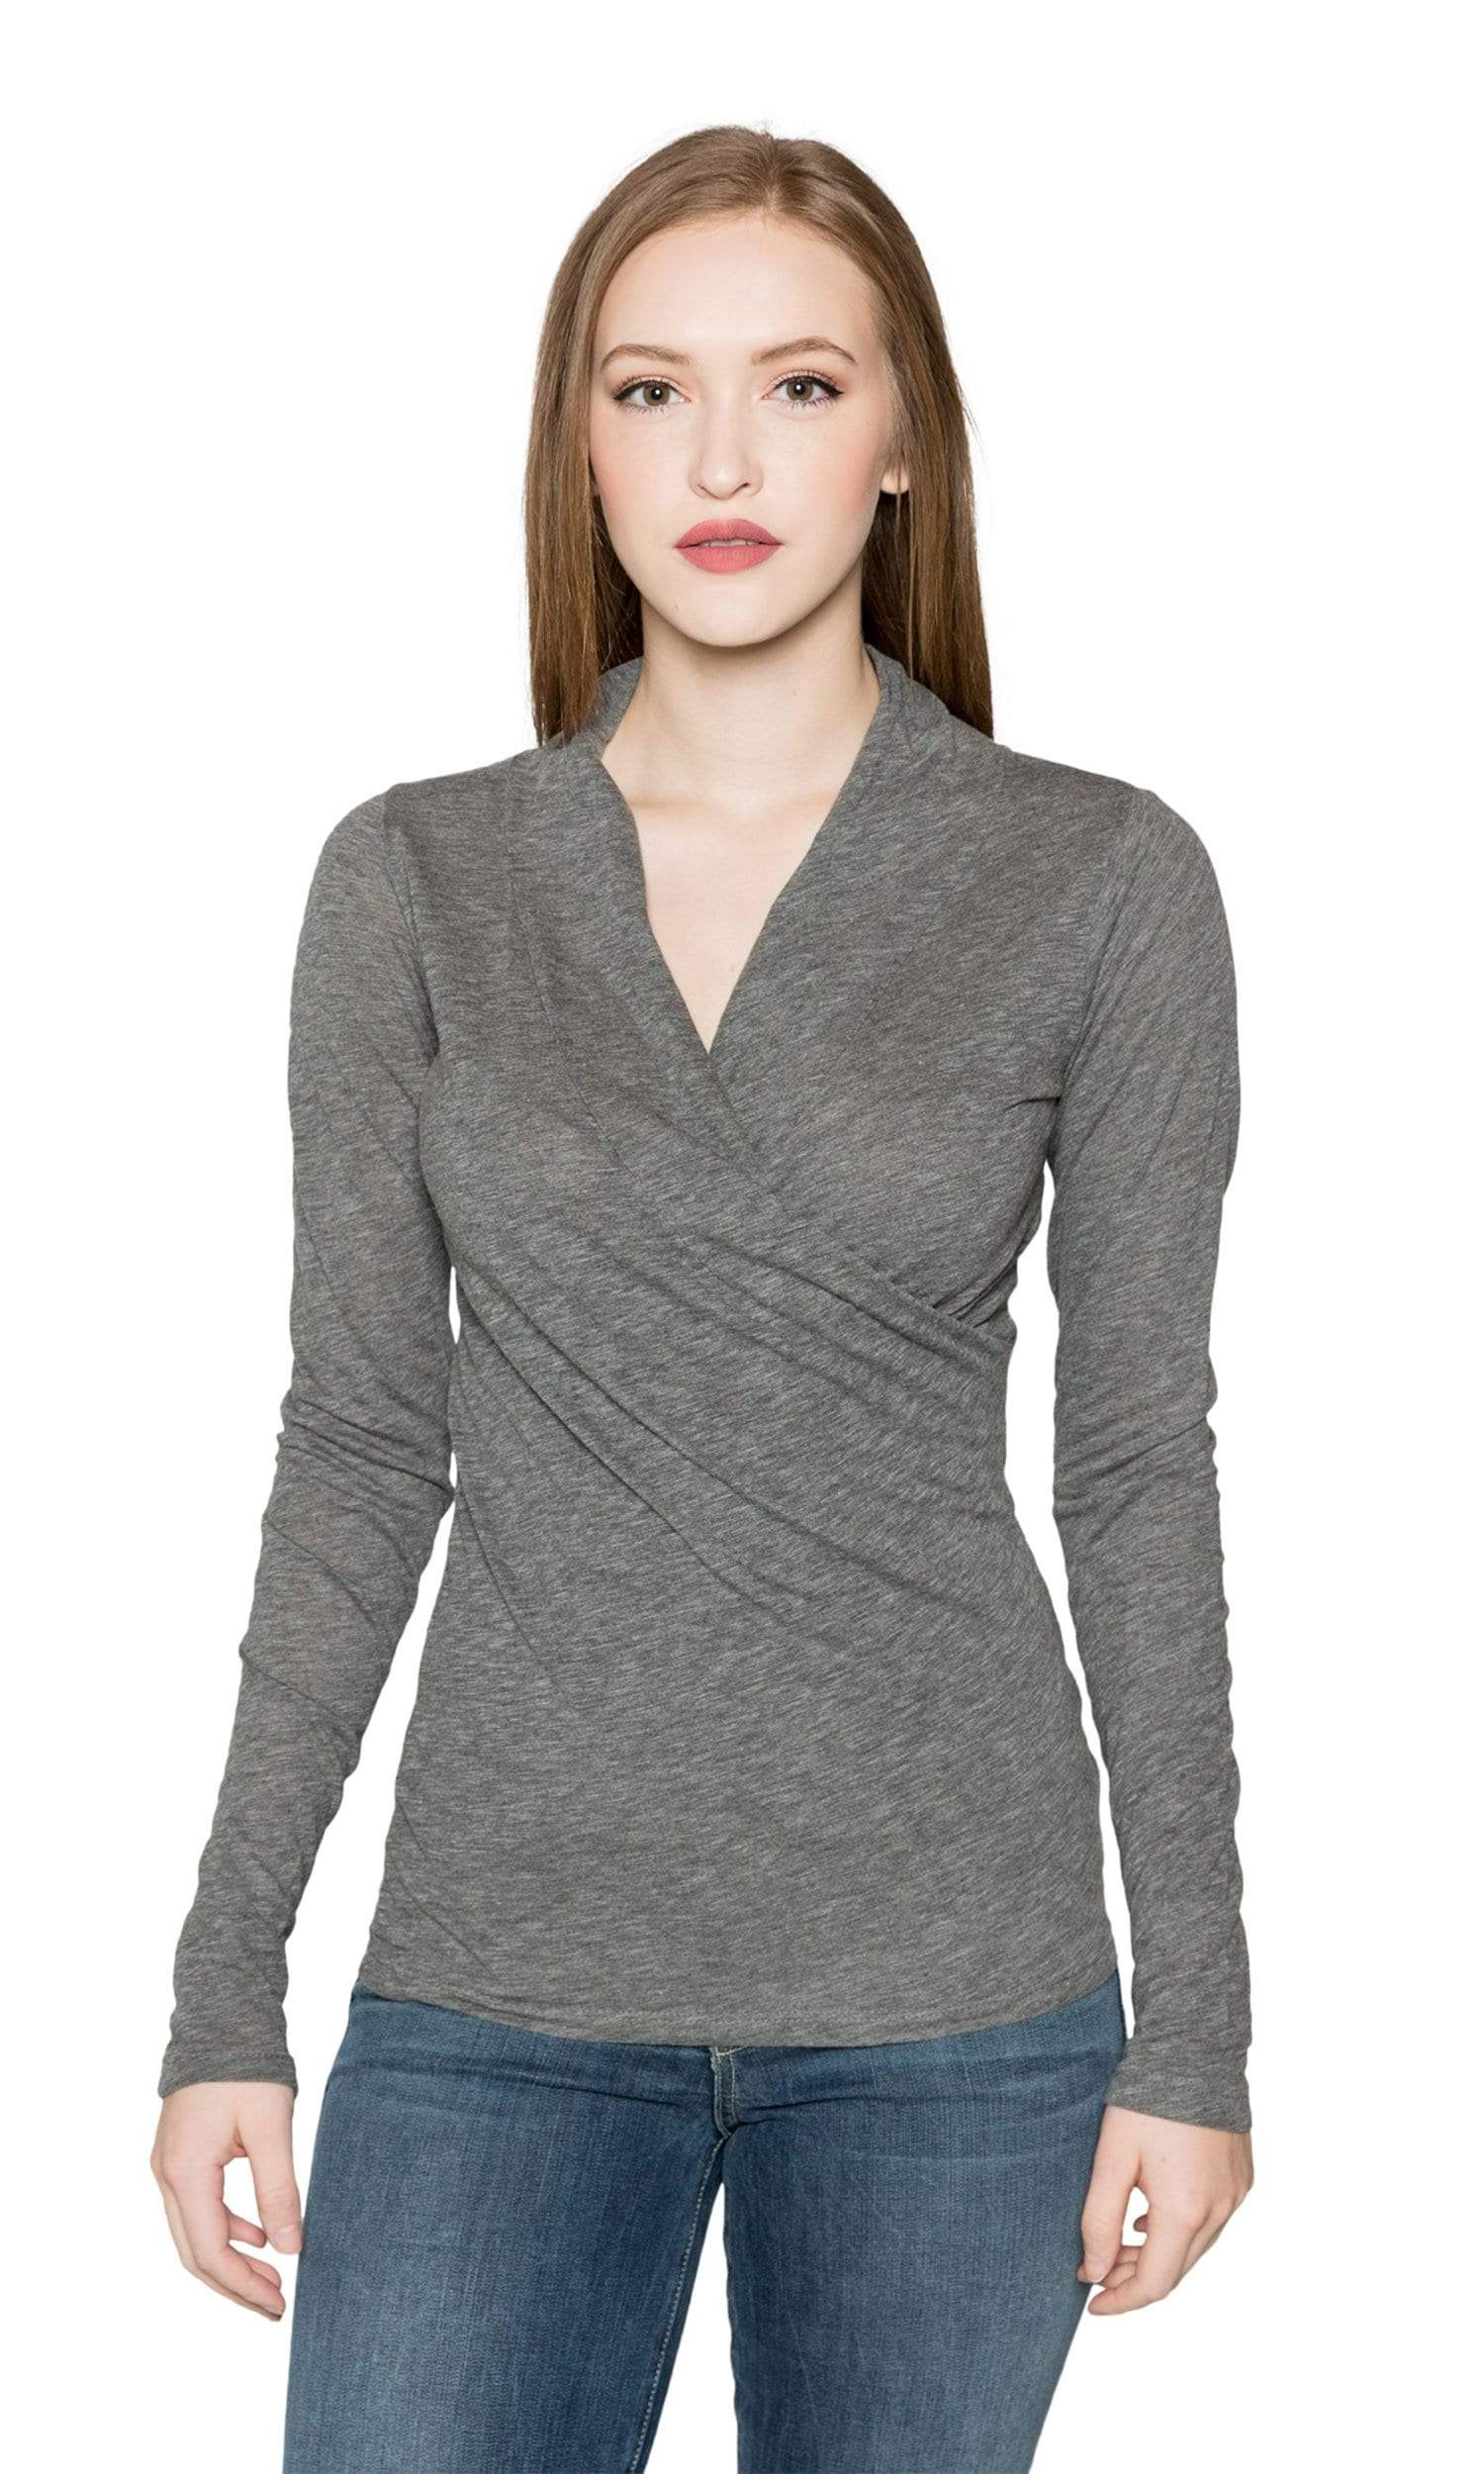 Velvet by Graham & Spencer Meri05 Front Wrap Top-Charcoal